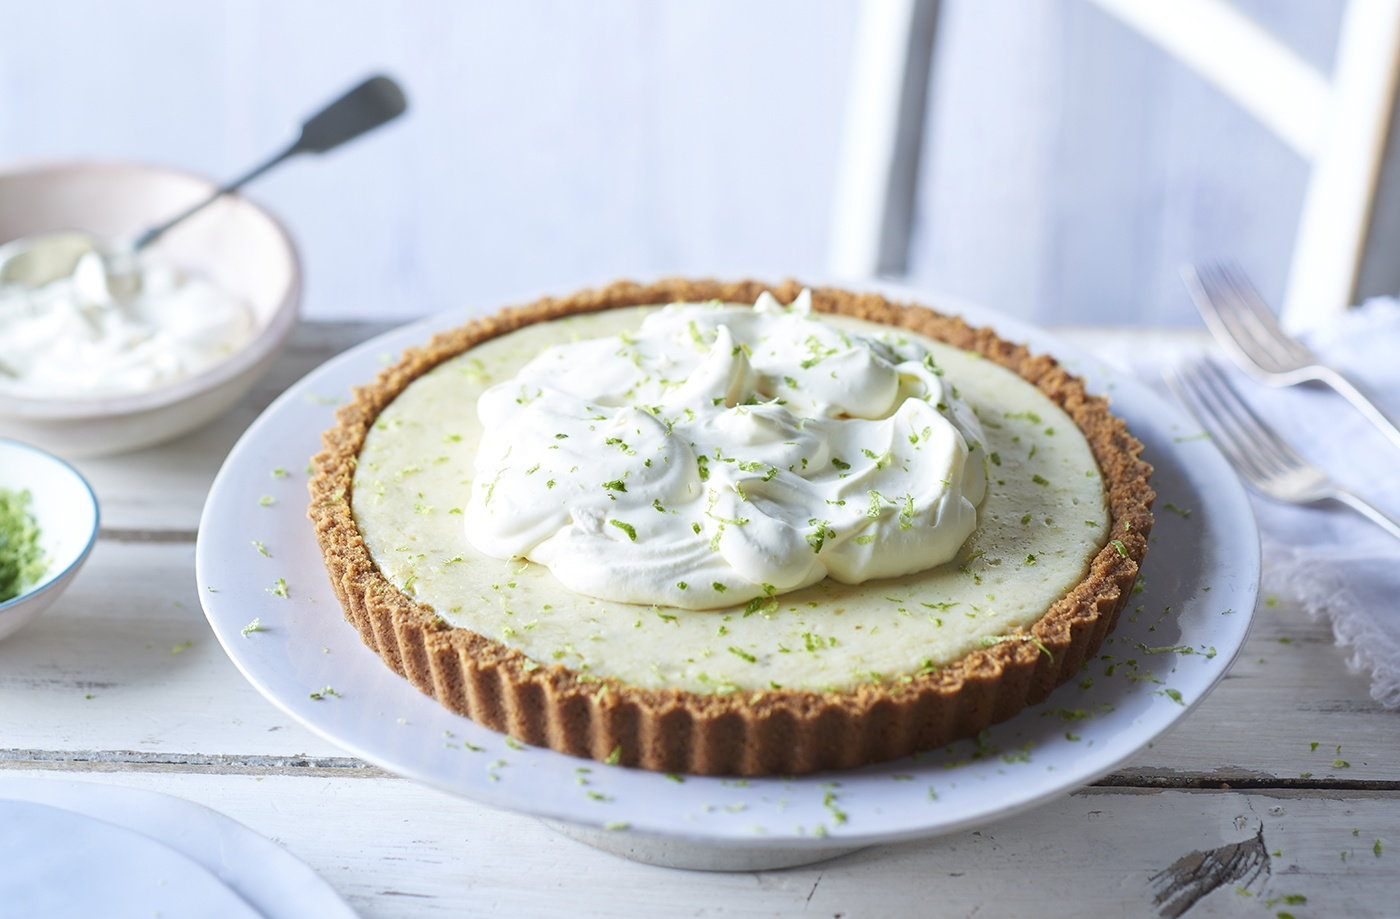 Key Lime Piefinal